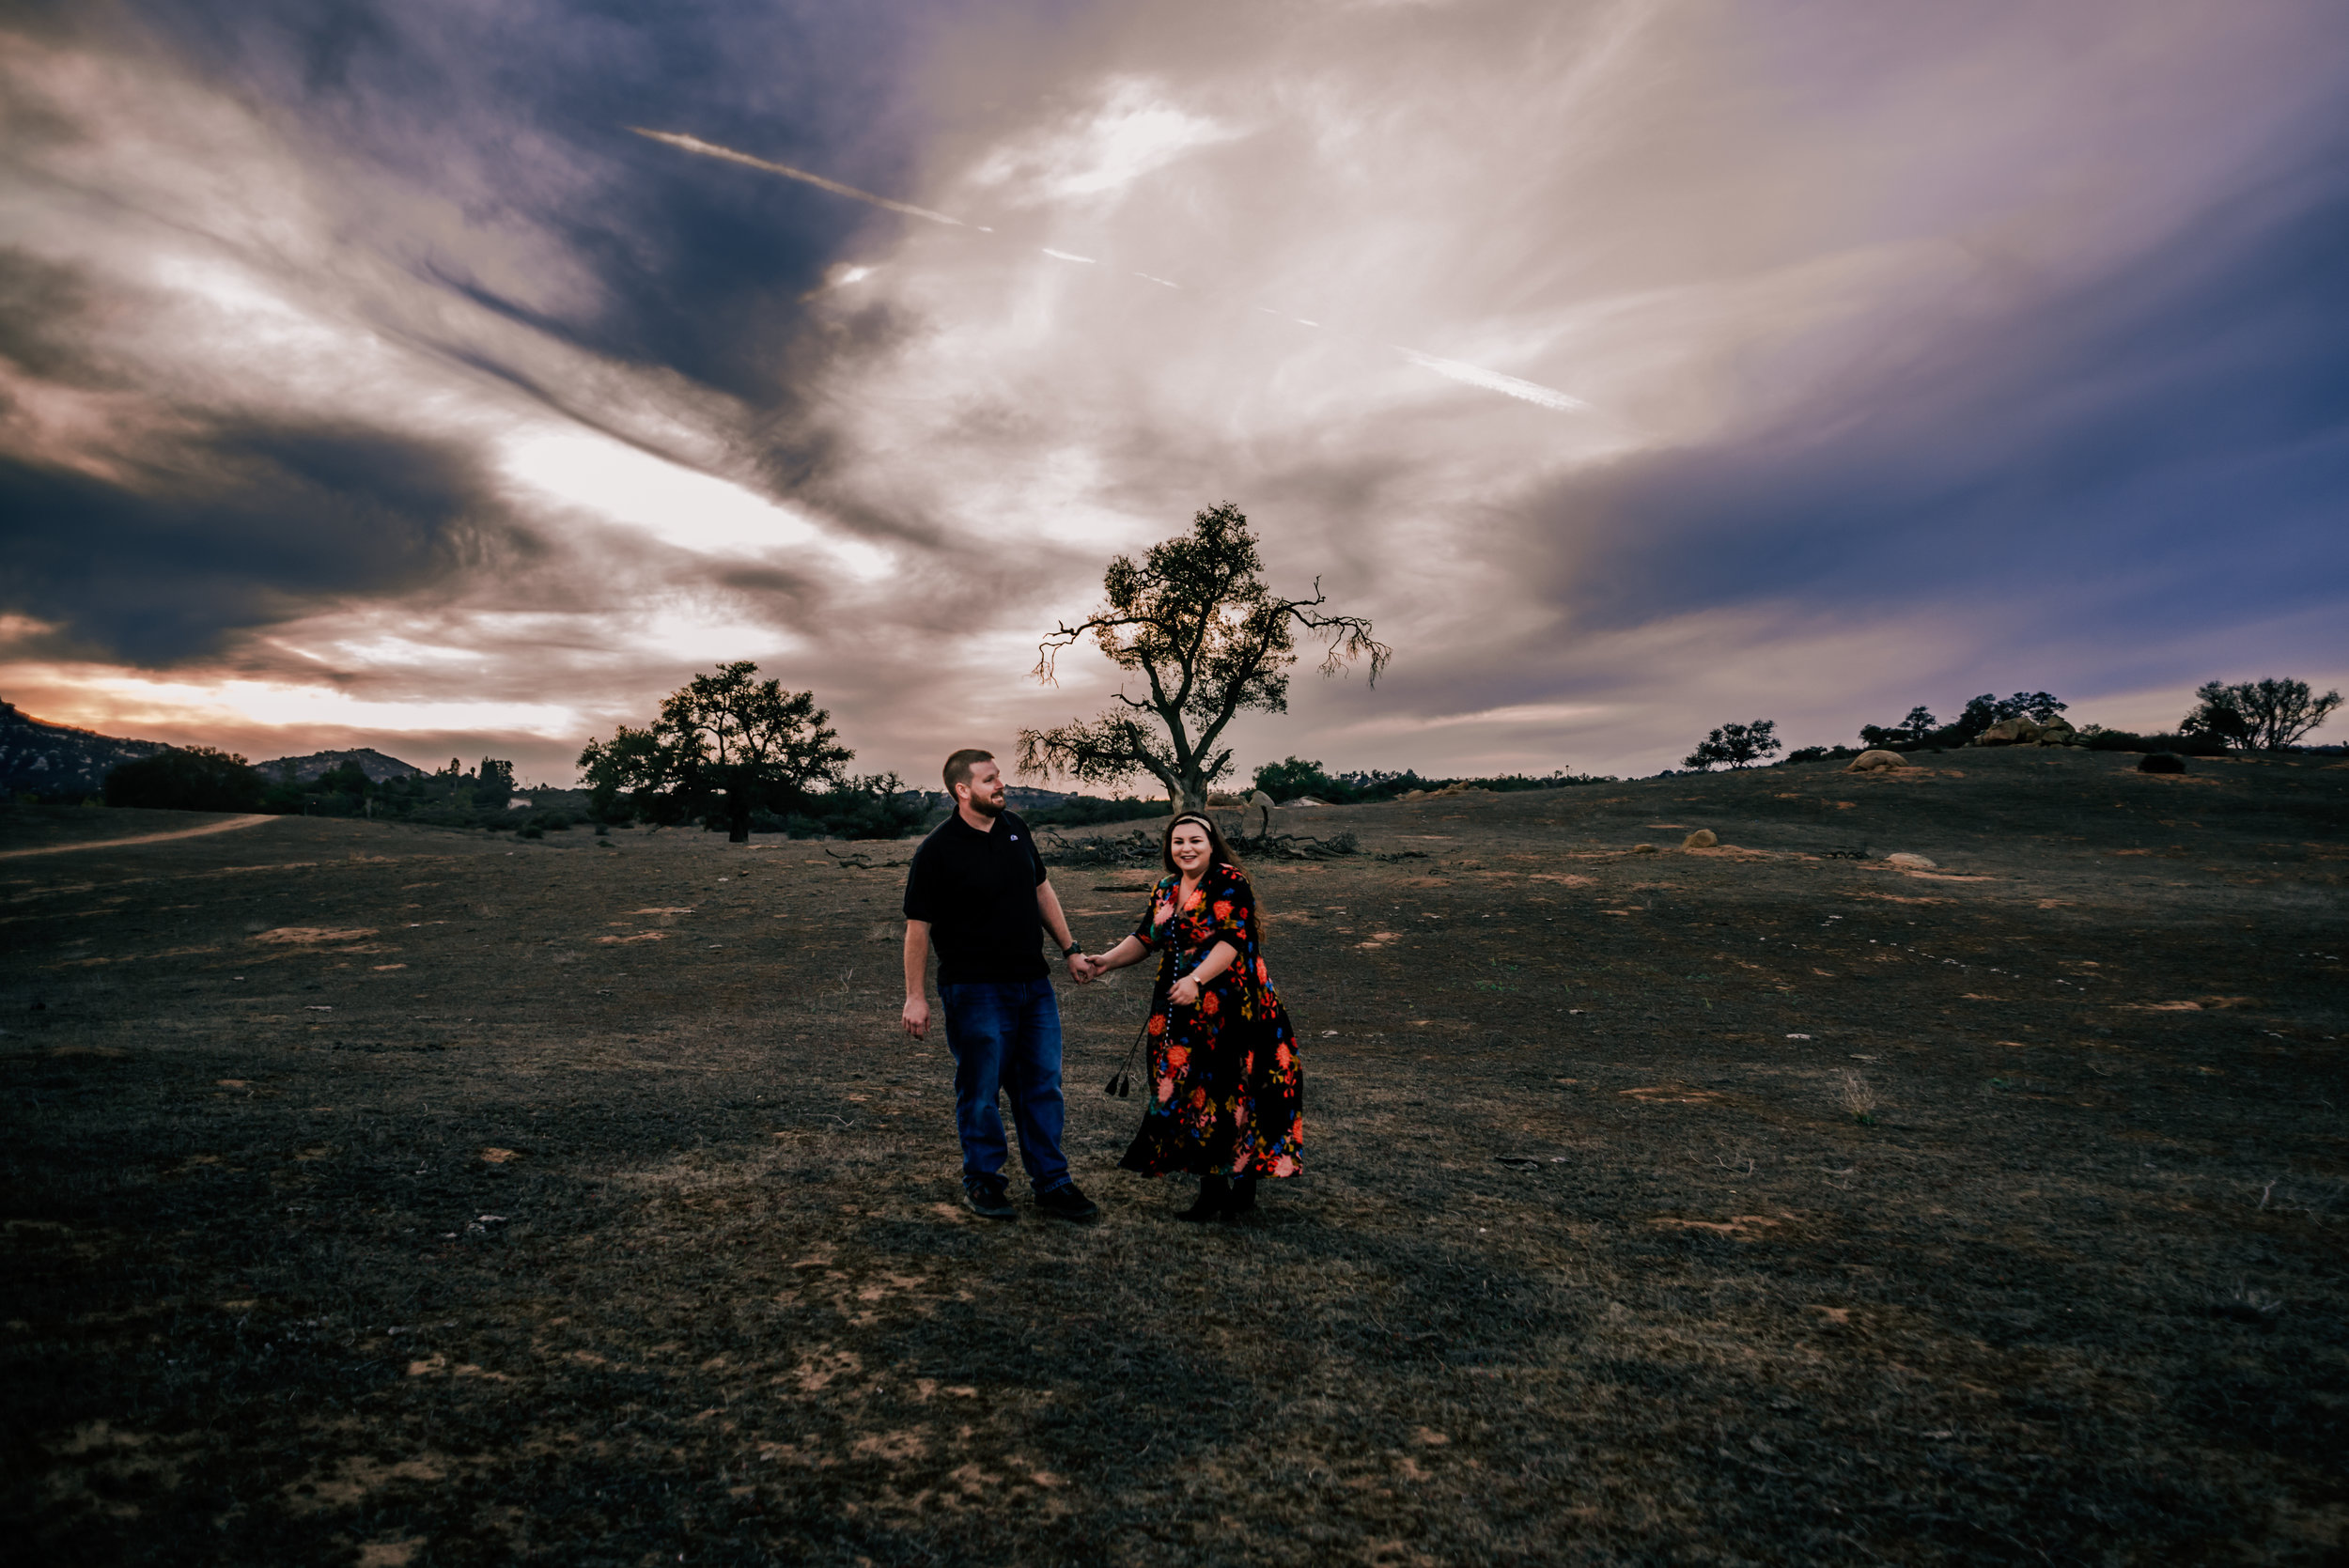 Ramona Grasslands Photograph with Couple Violets and Clementines Photography San Diego